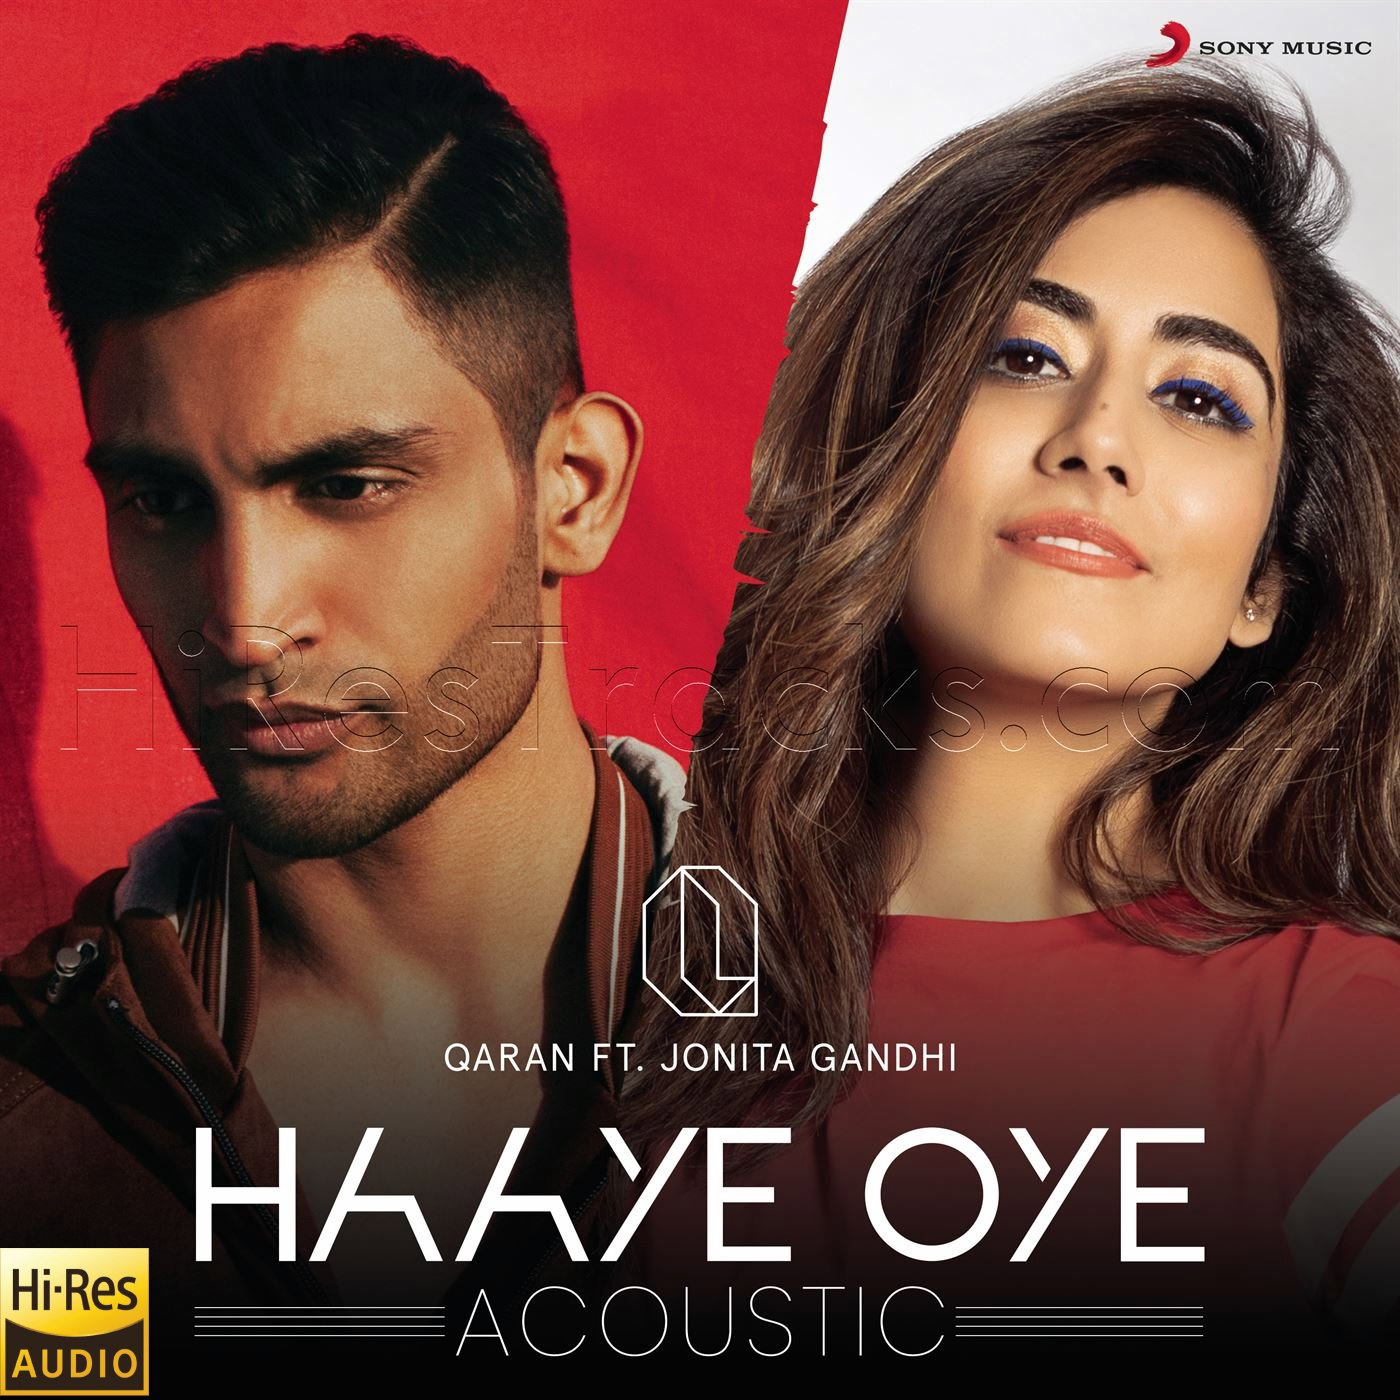 Haaye Oye (Acoustic) [feat. Jonita Gandhi] – Single (2019) [24 BIT-48 KHZ]